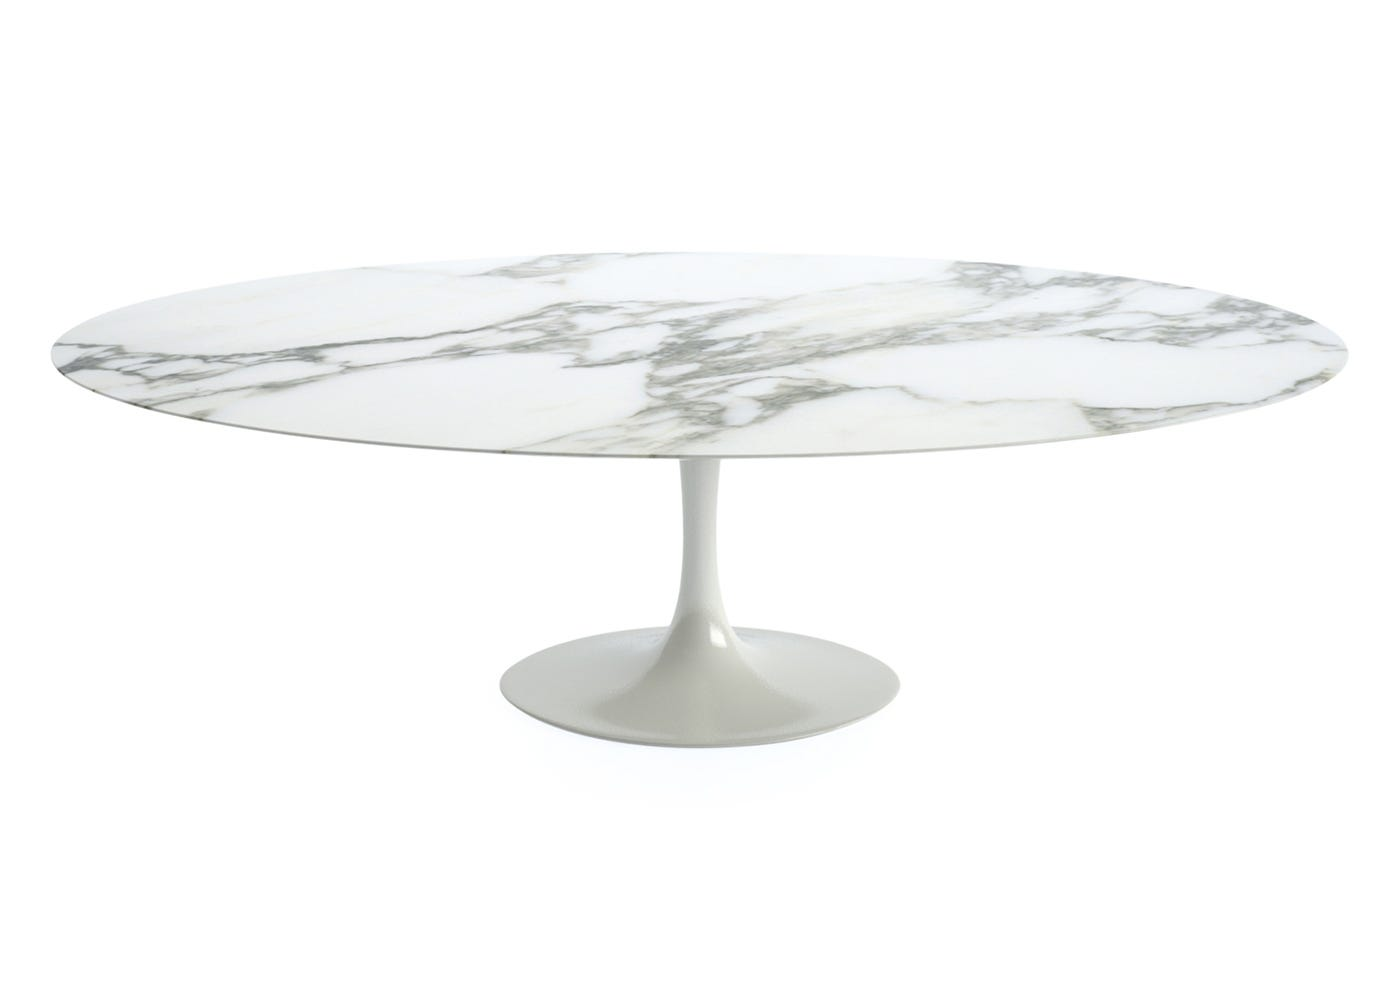 Saarinen Oval Dining Table Extra Large With Calacatta Coated Marble Top  sc 1 st  Heal\u0027s & Saarinen Oval Dining Table